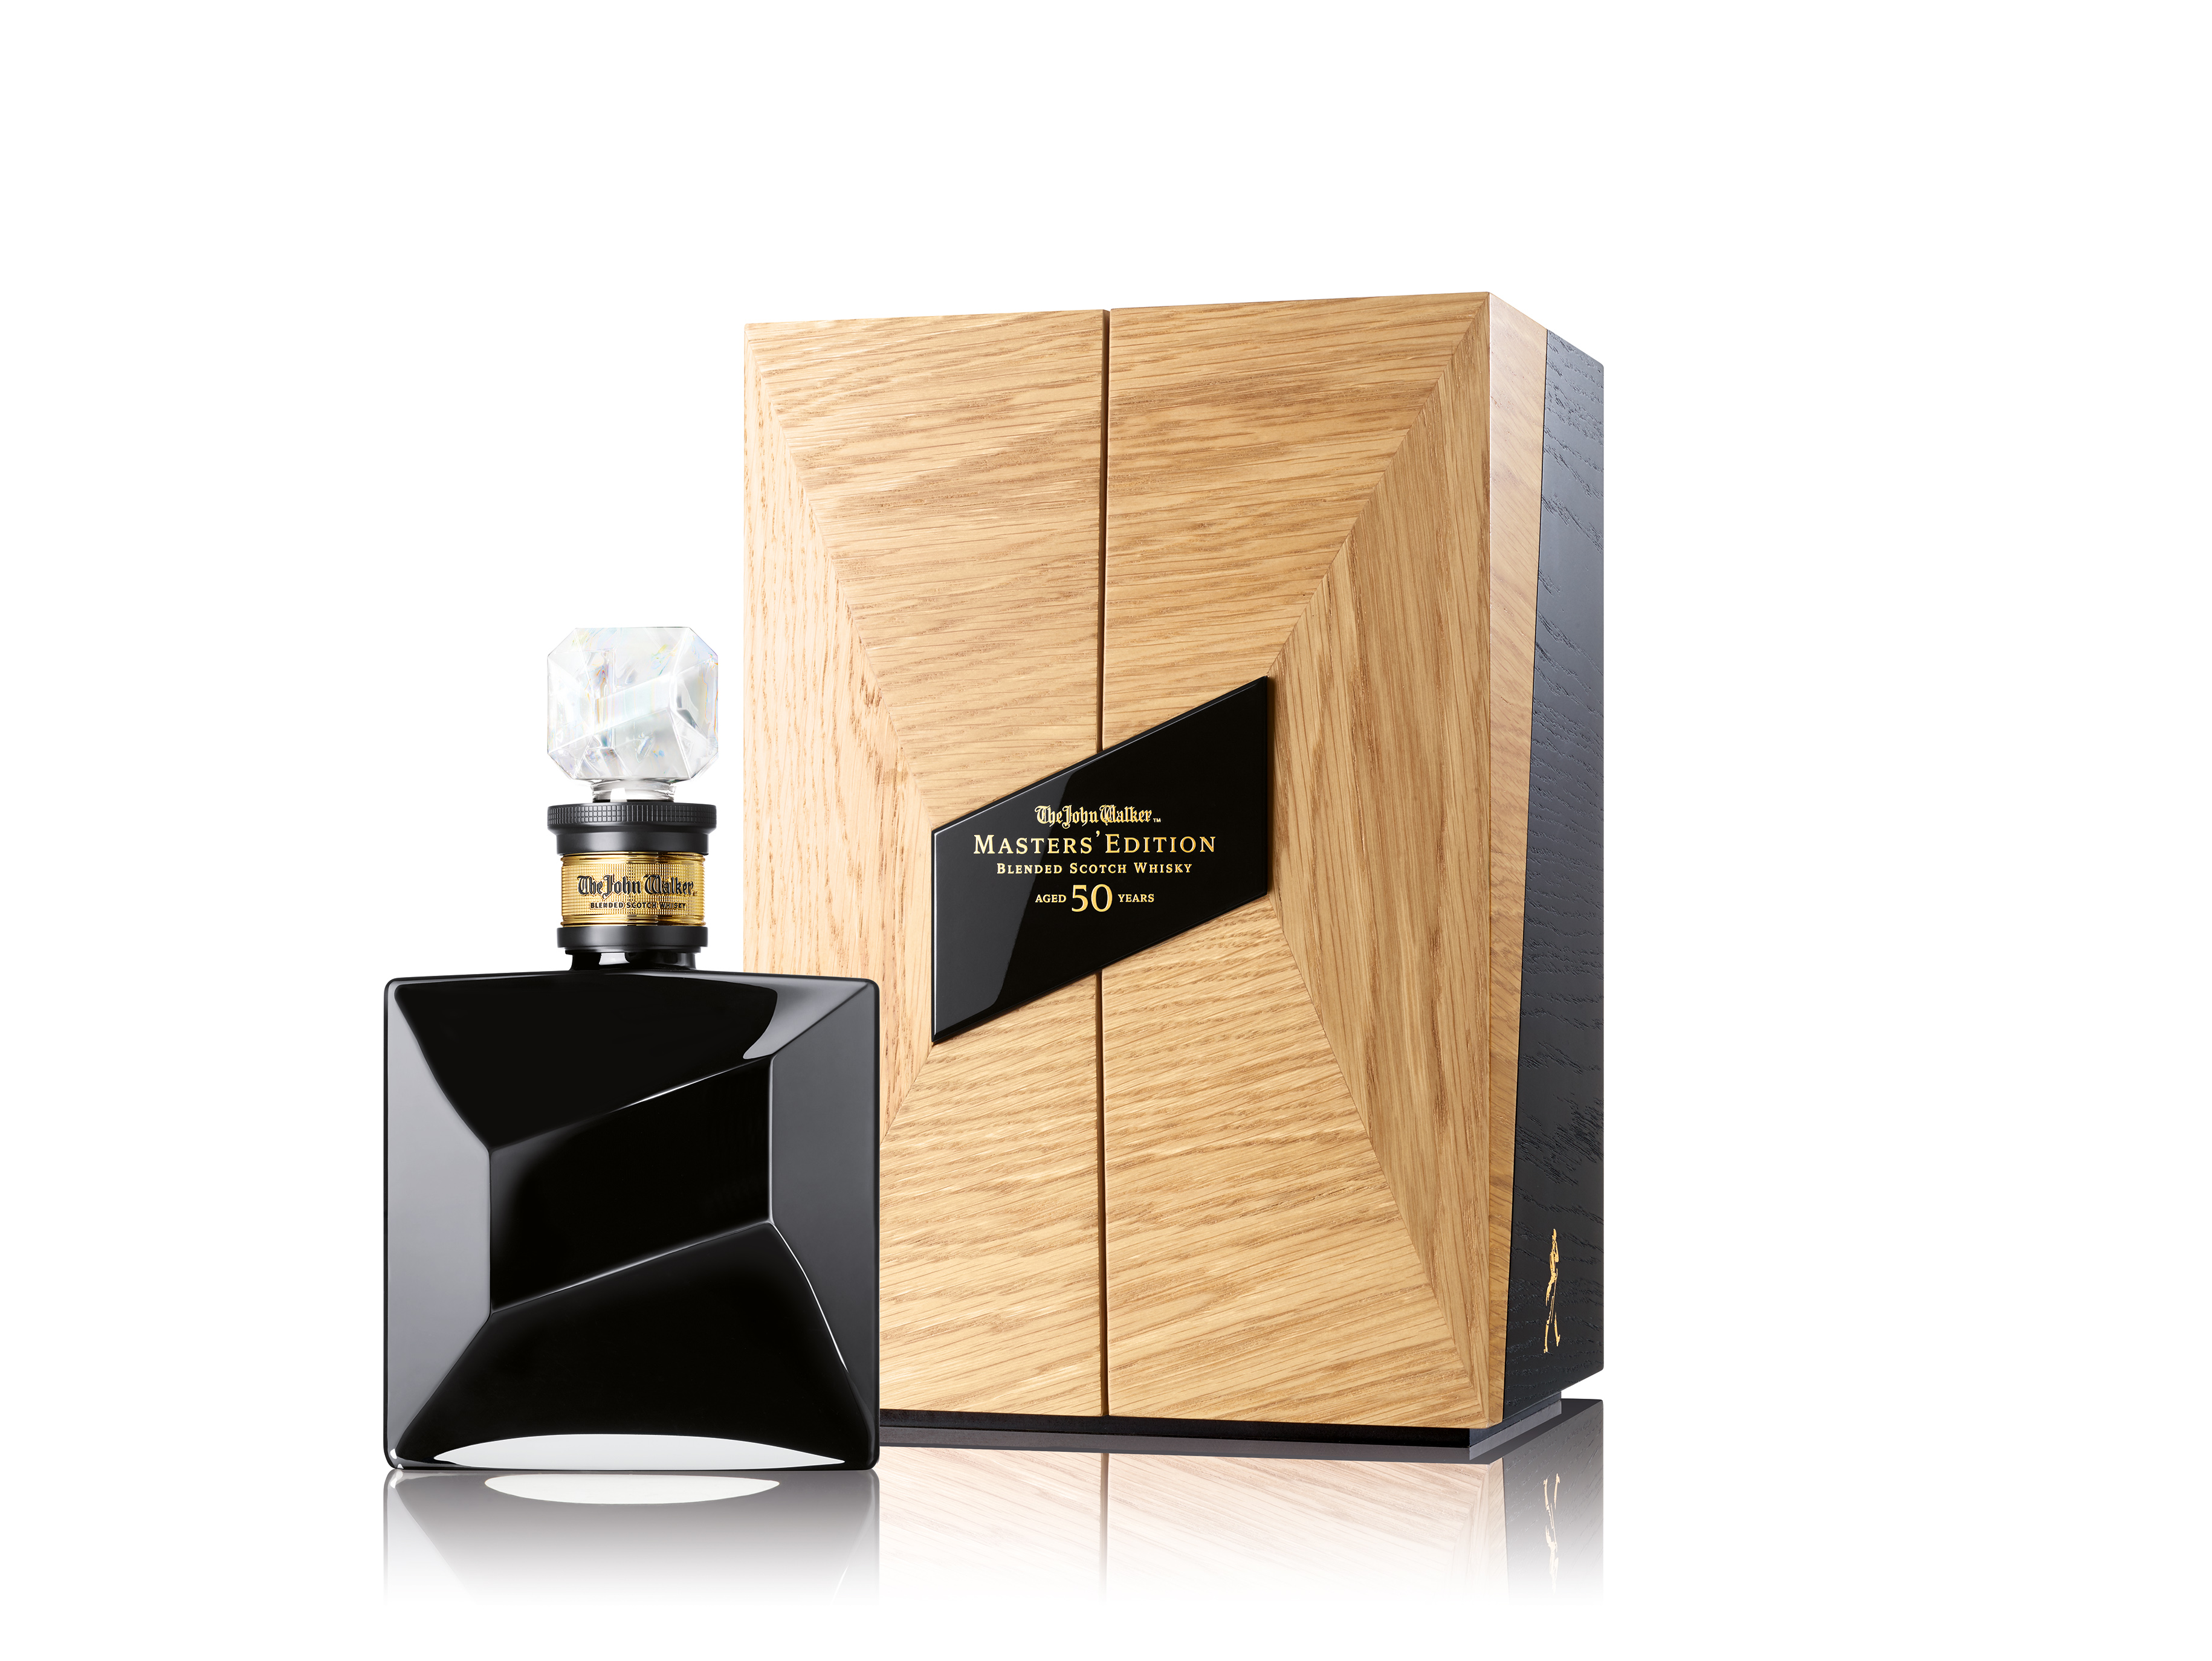 The John Walker Masters' Edition is the oldest Scotch whisky yet by Johnnie Walker